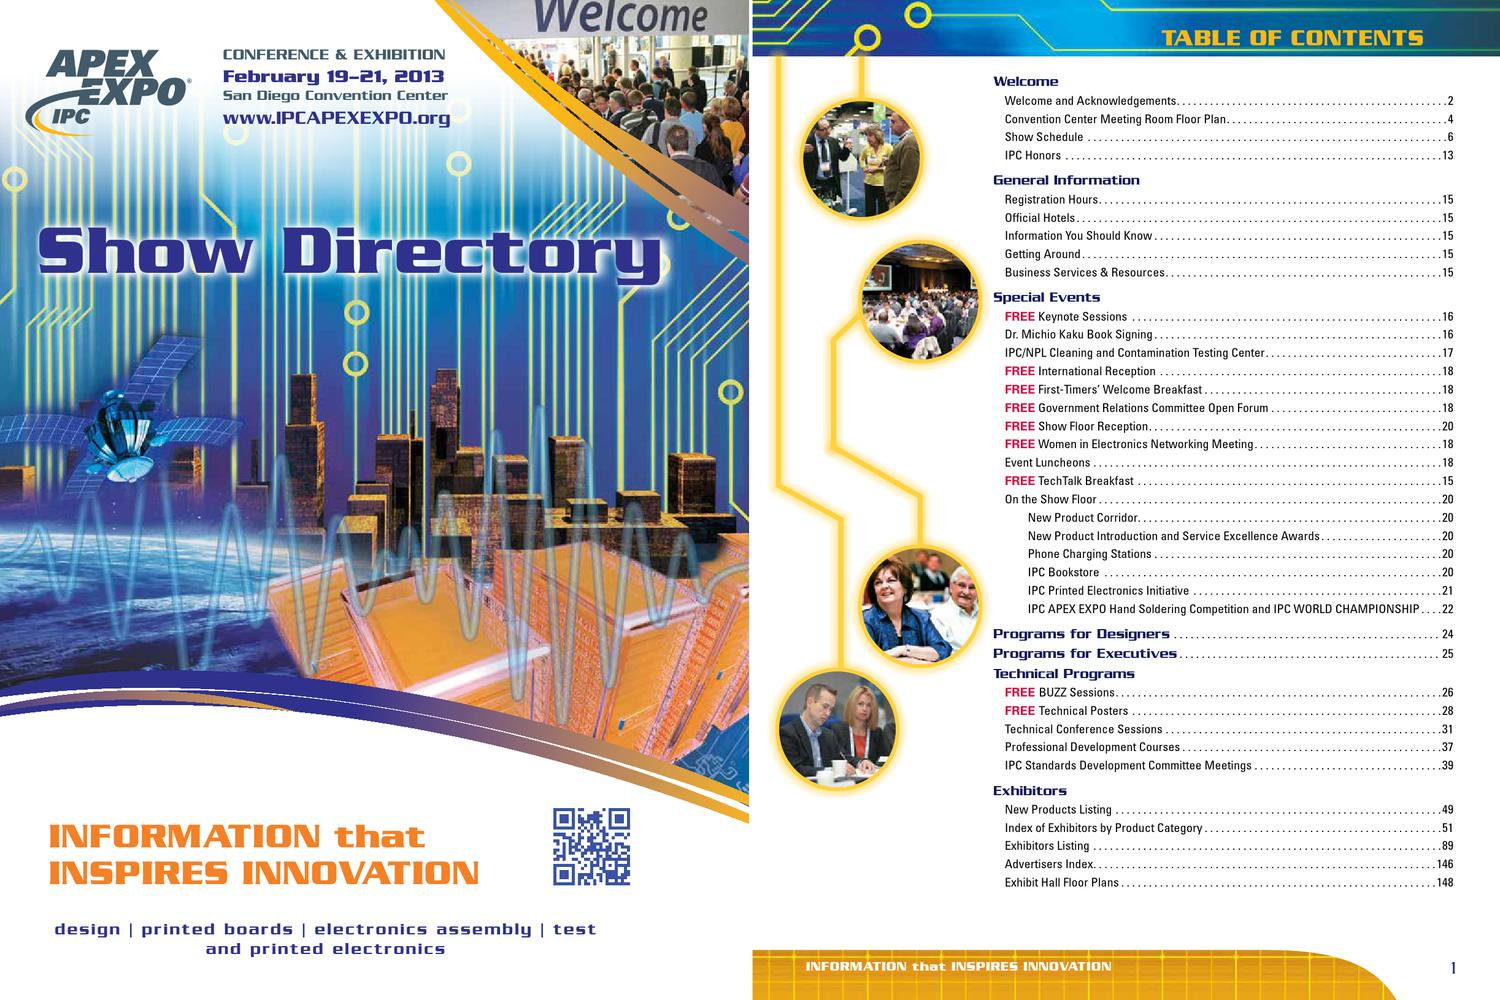 Ipc Apex Expo 2013 Show Directory By Issuu Laminate Rigid Pcb High Tg Low Cte Circuit Board Maker From China